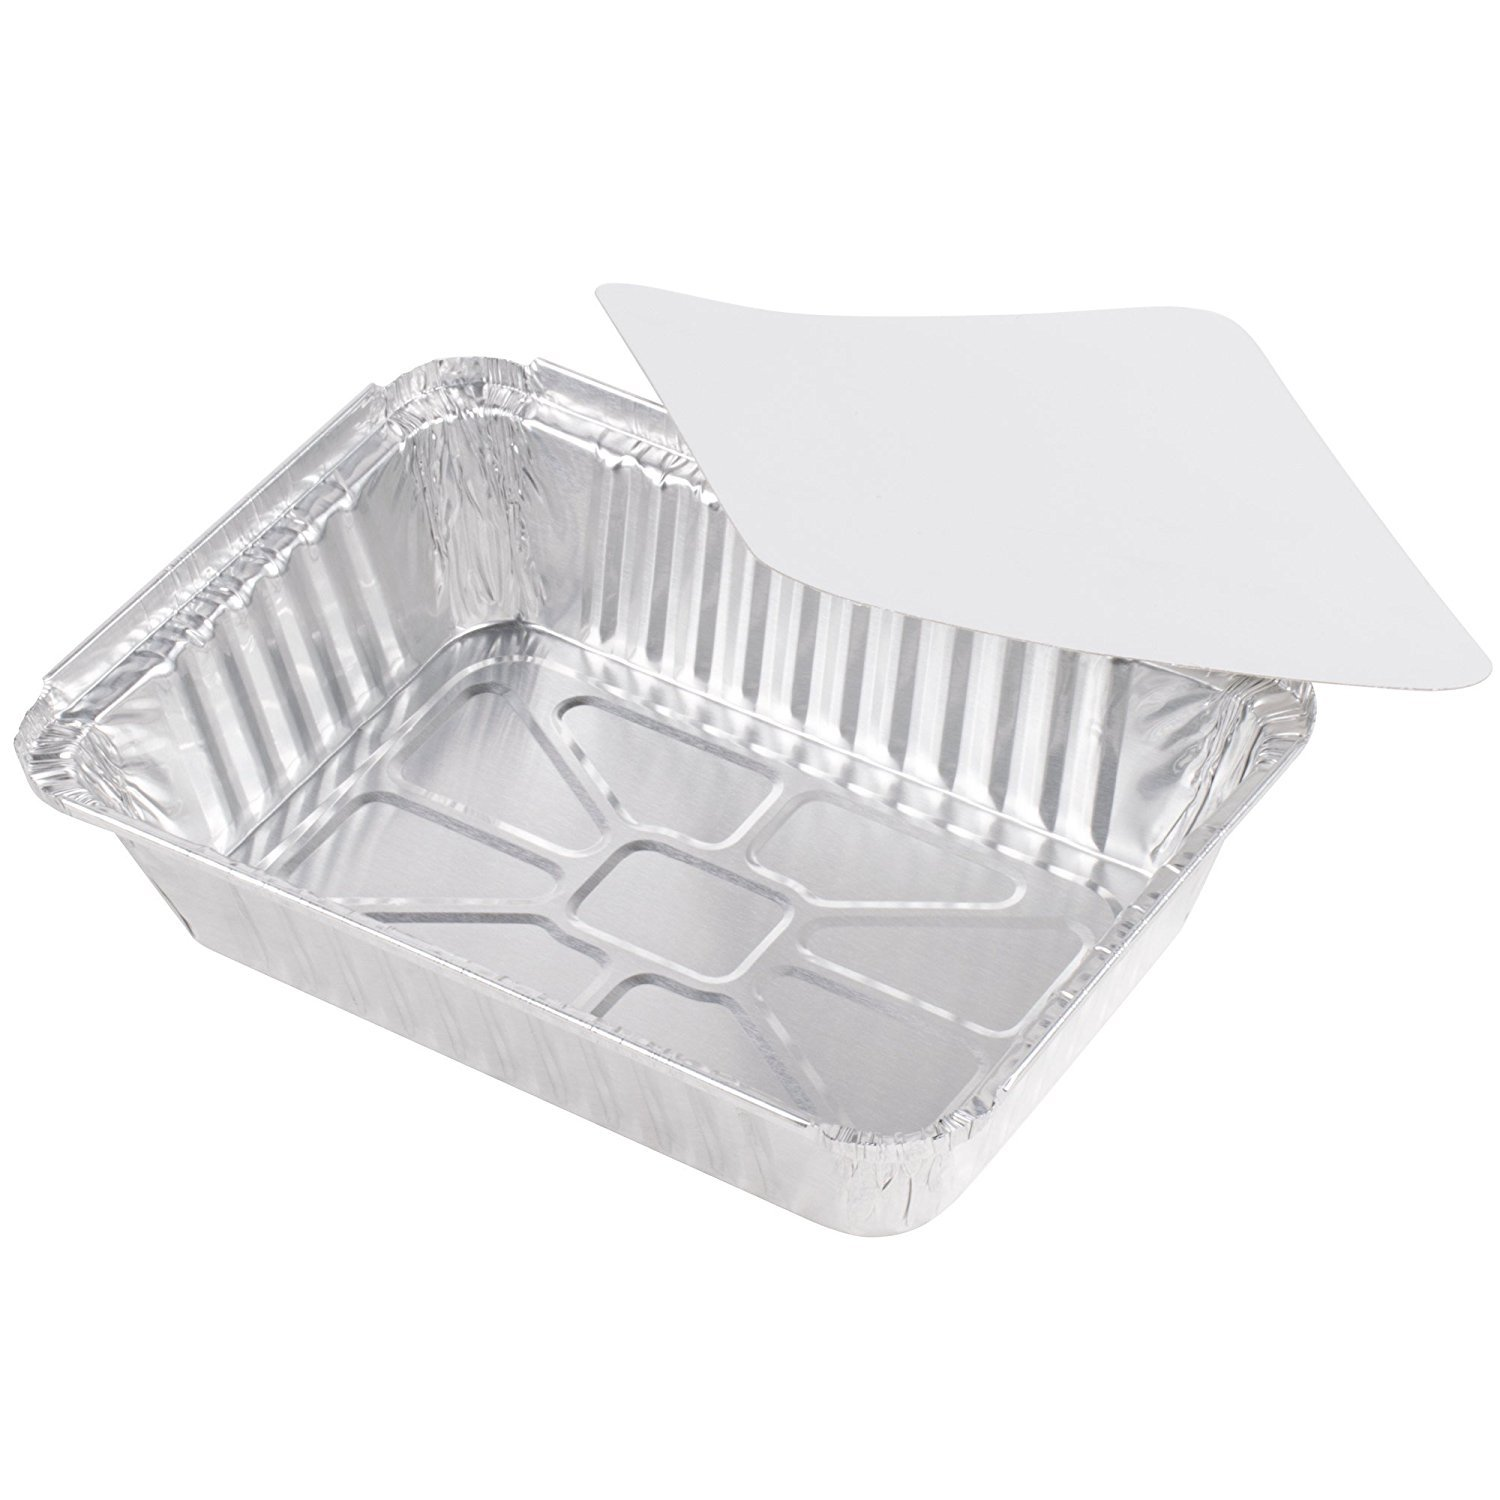 50-Pack Heavy Duty Disposable Aluminum Oblong Foil Pans with Lid Covers | 100% Recyclable Tin Food Storage Tray | Extra-Sturdy Containers for Cooking, Baking, Meal Prep, Takeout - 8.4'' x 5.9'' - 2.25lb by DCS Deals (Image #2)